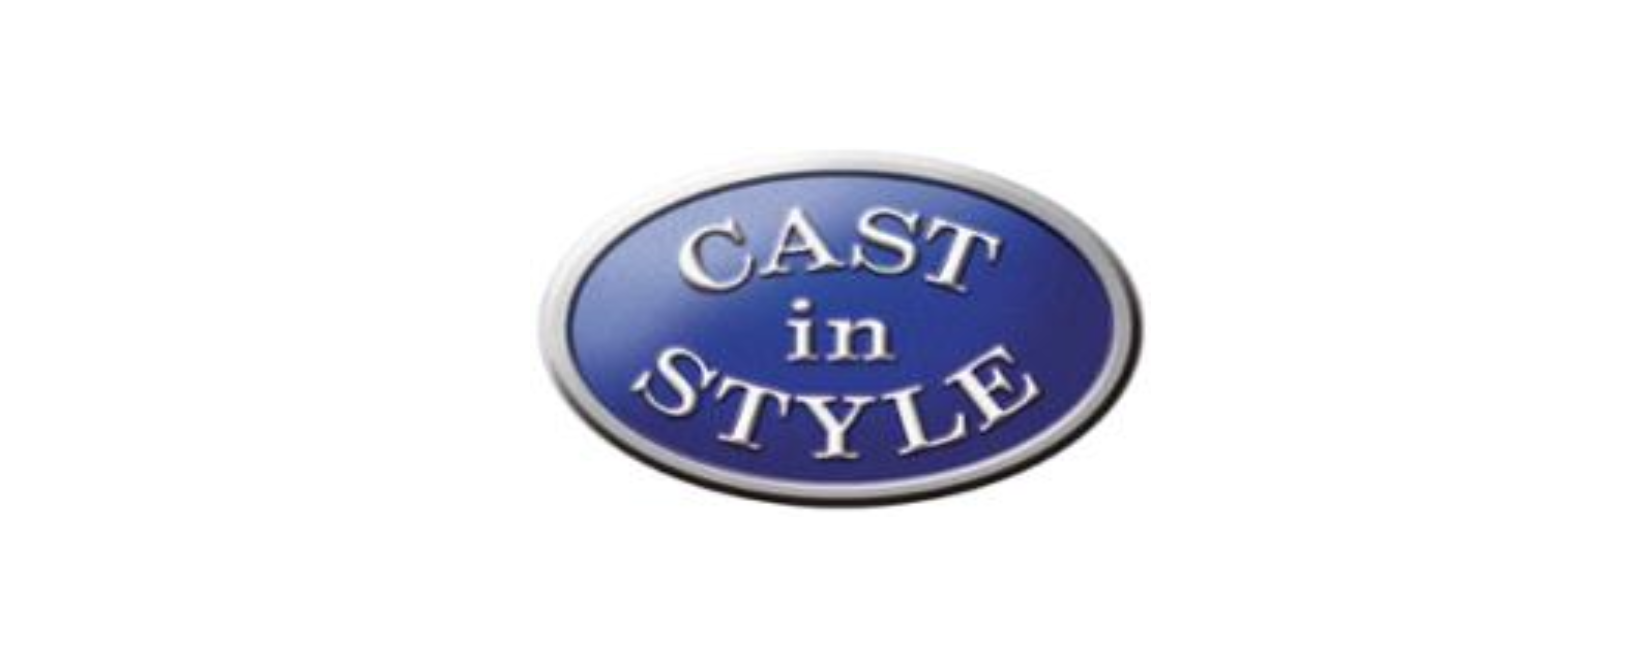 Cast In Style UK Discount Code 2021